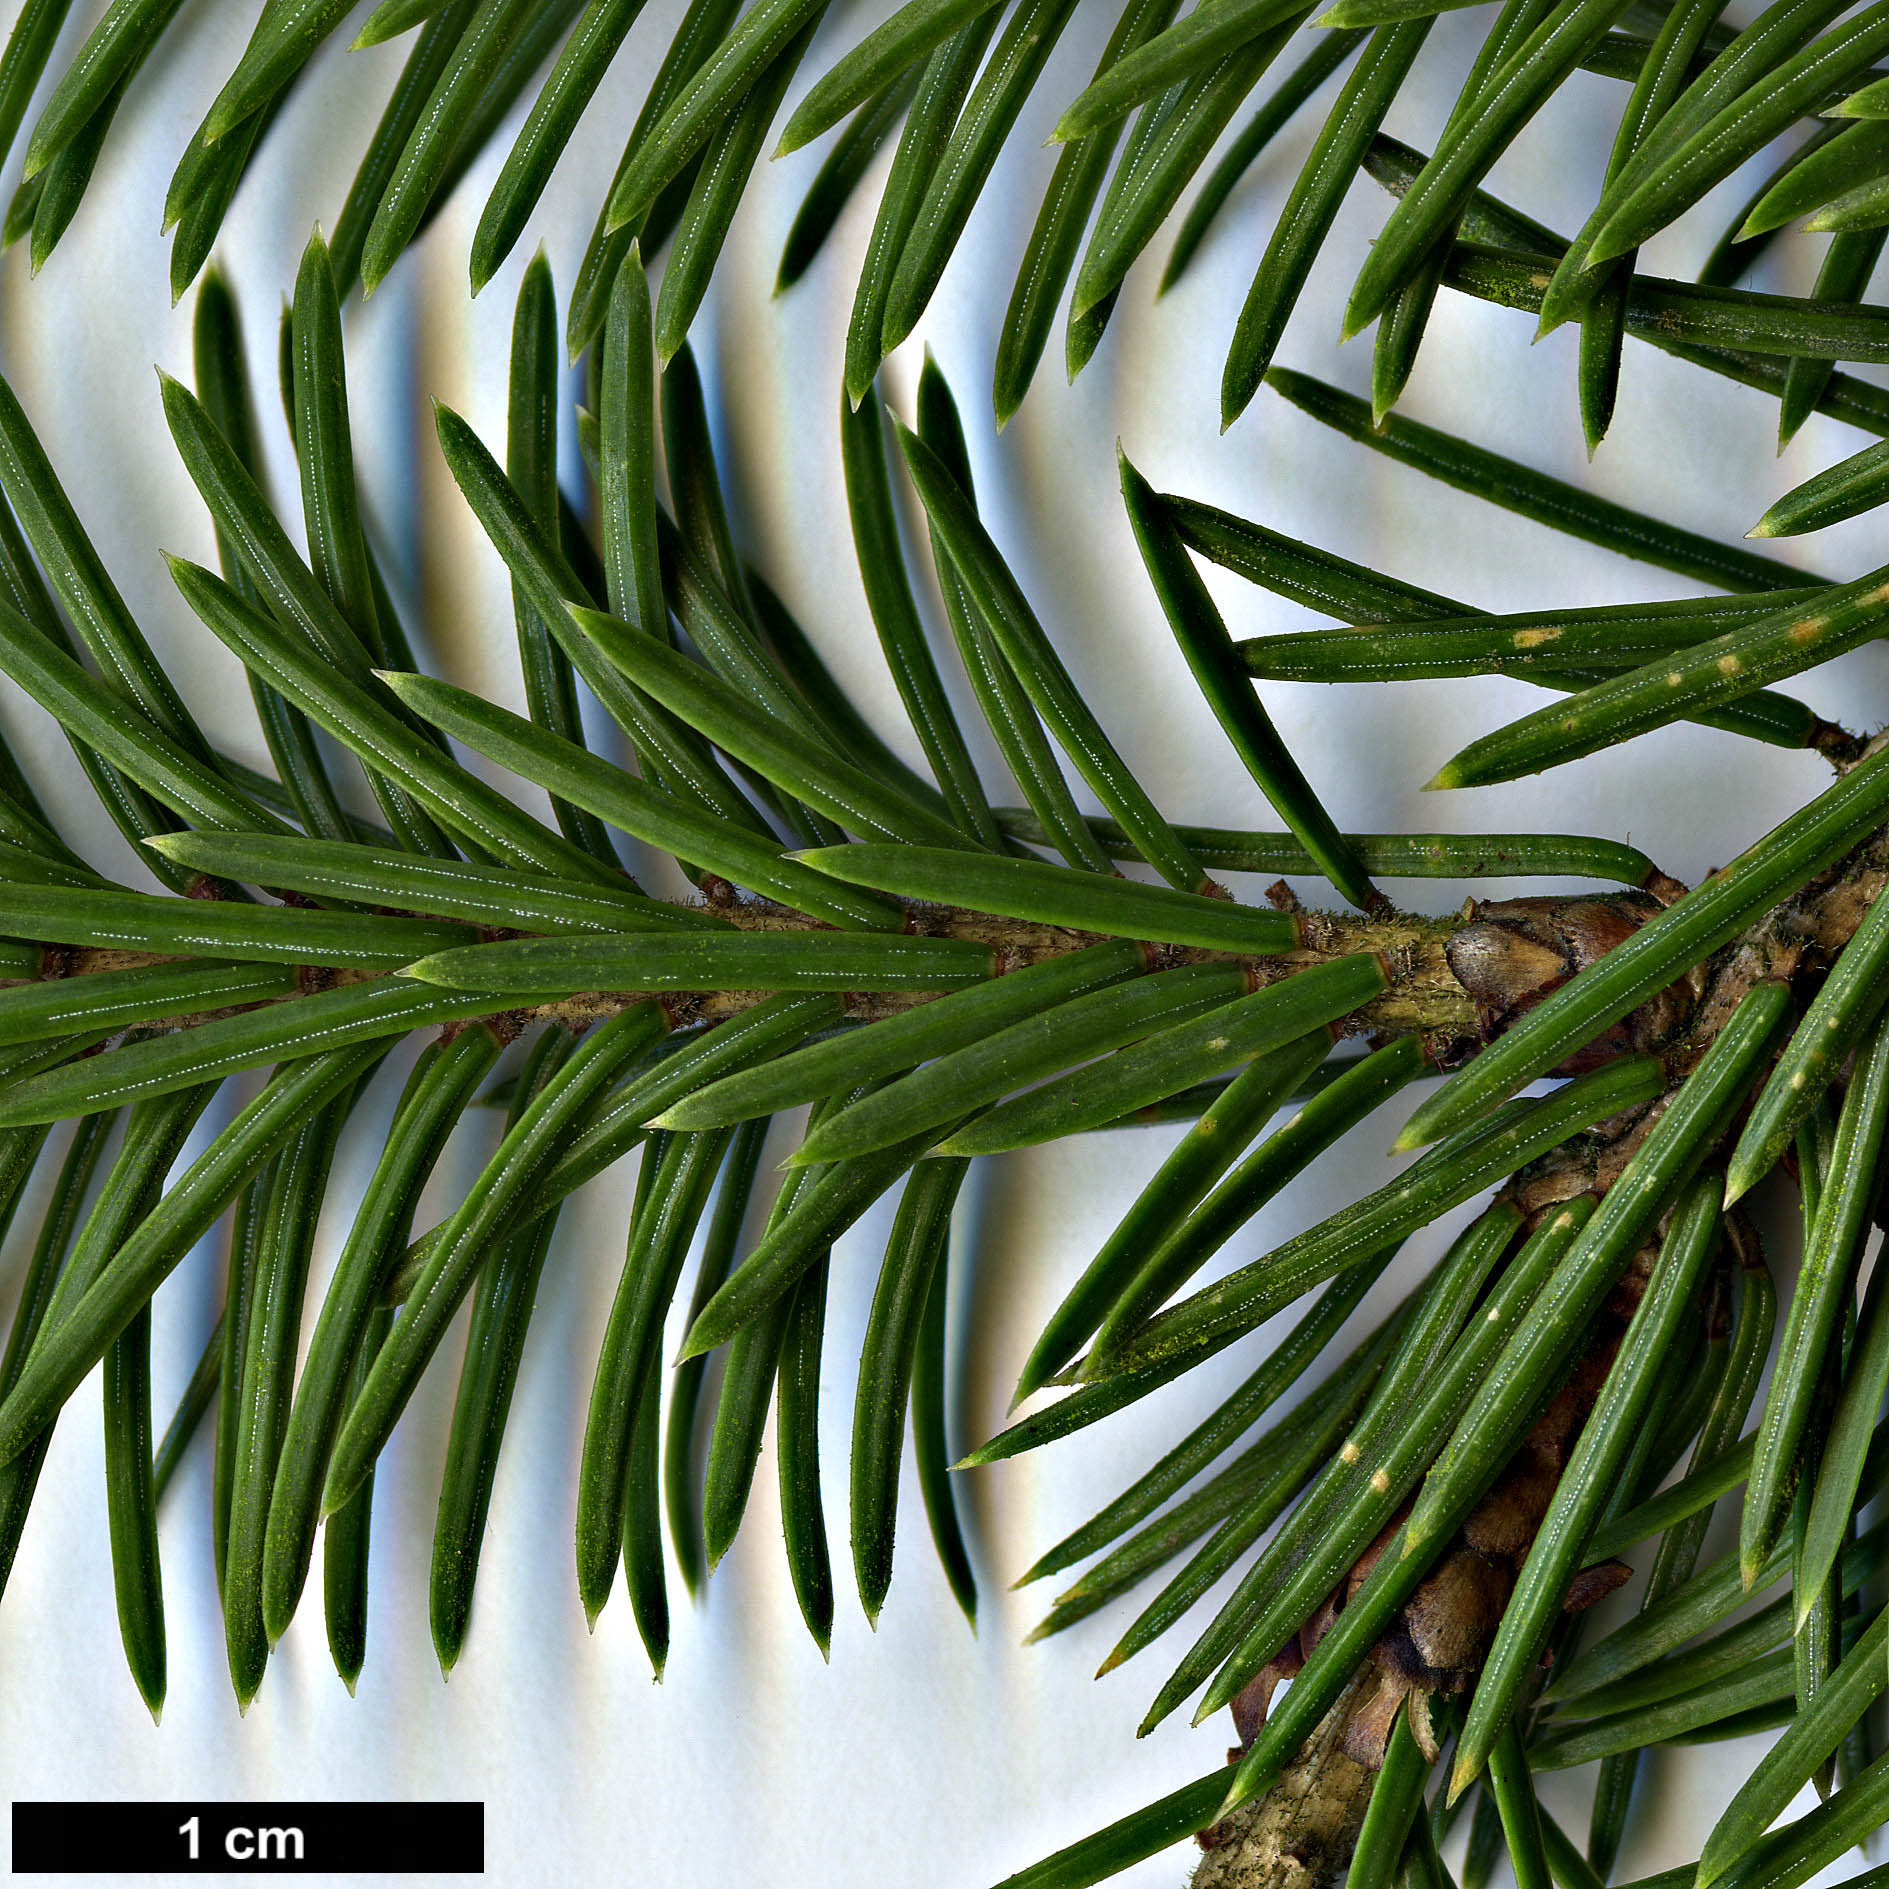 High resolution image: Family: Pinaceae - Genus: Picea - Taxon: purpurea